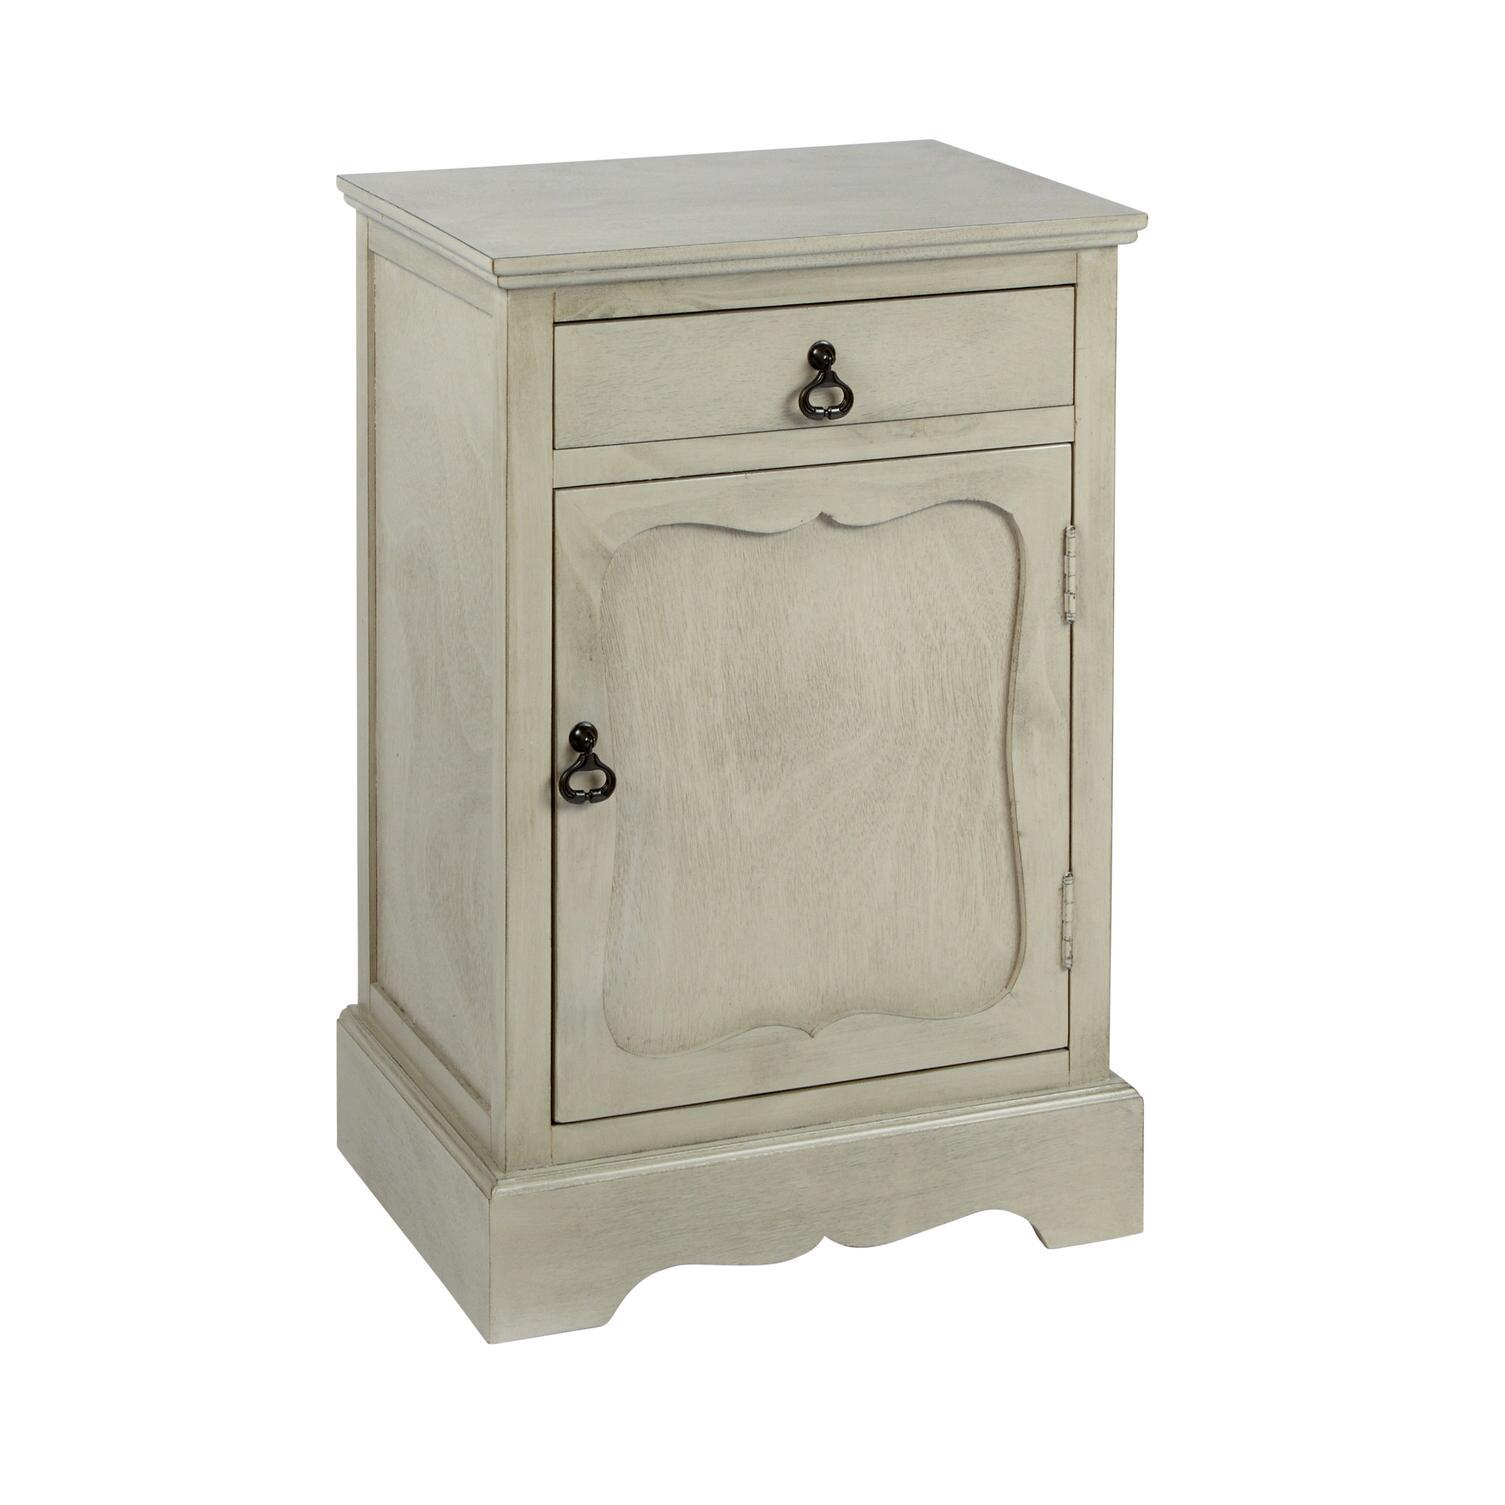 The Grainhouseu0026trade; Gray 1 Door/1 Drawer Cabinet